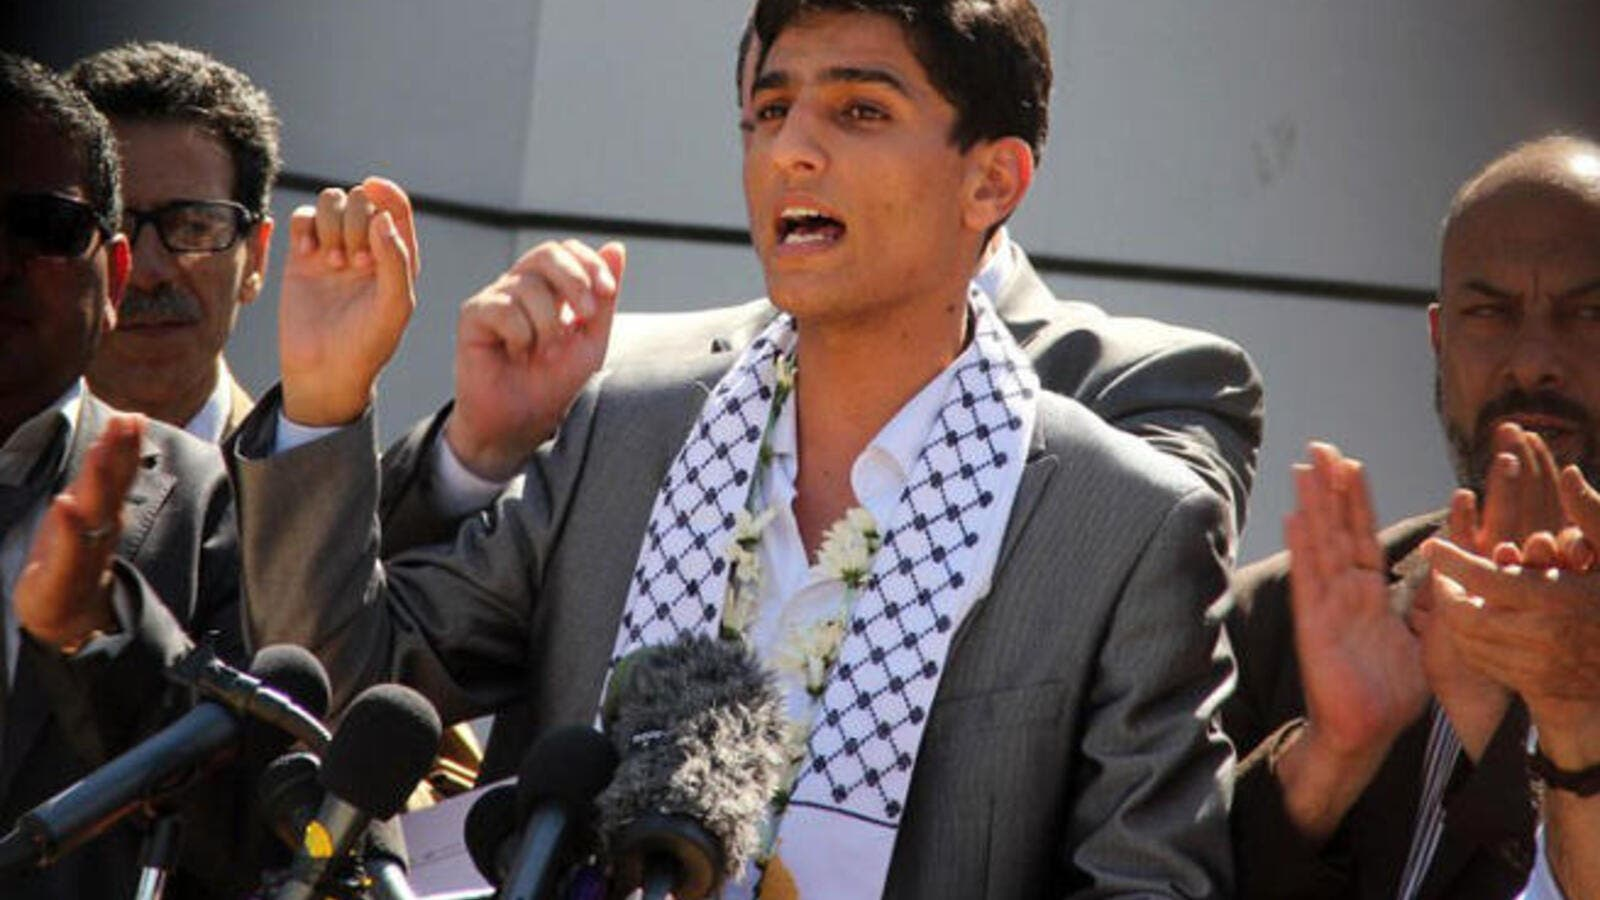 Palestine's new hero and Arab Idol winner Mohammad Assaf makes triumphal return to Gaza (AFP PHOTO/Khaled Omar)